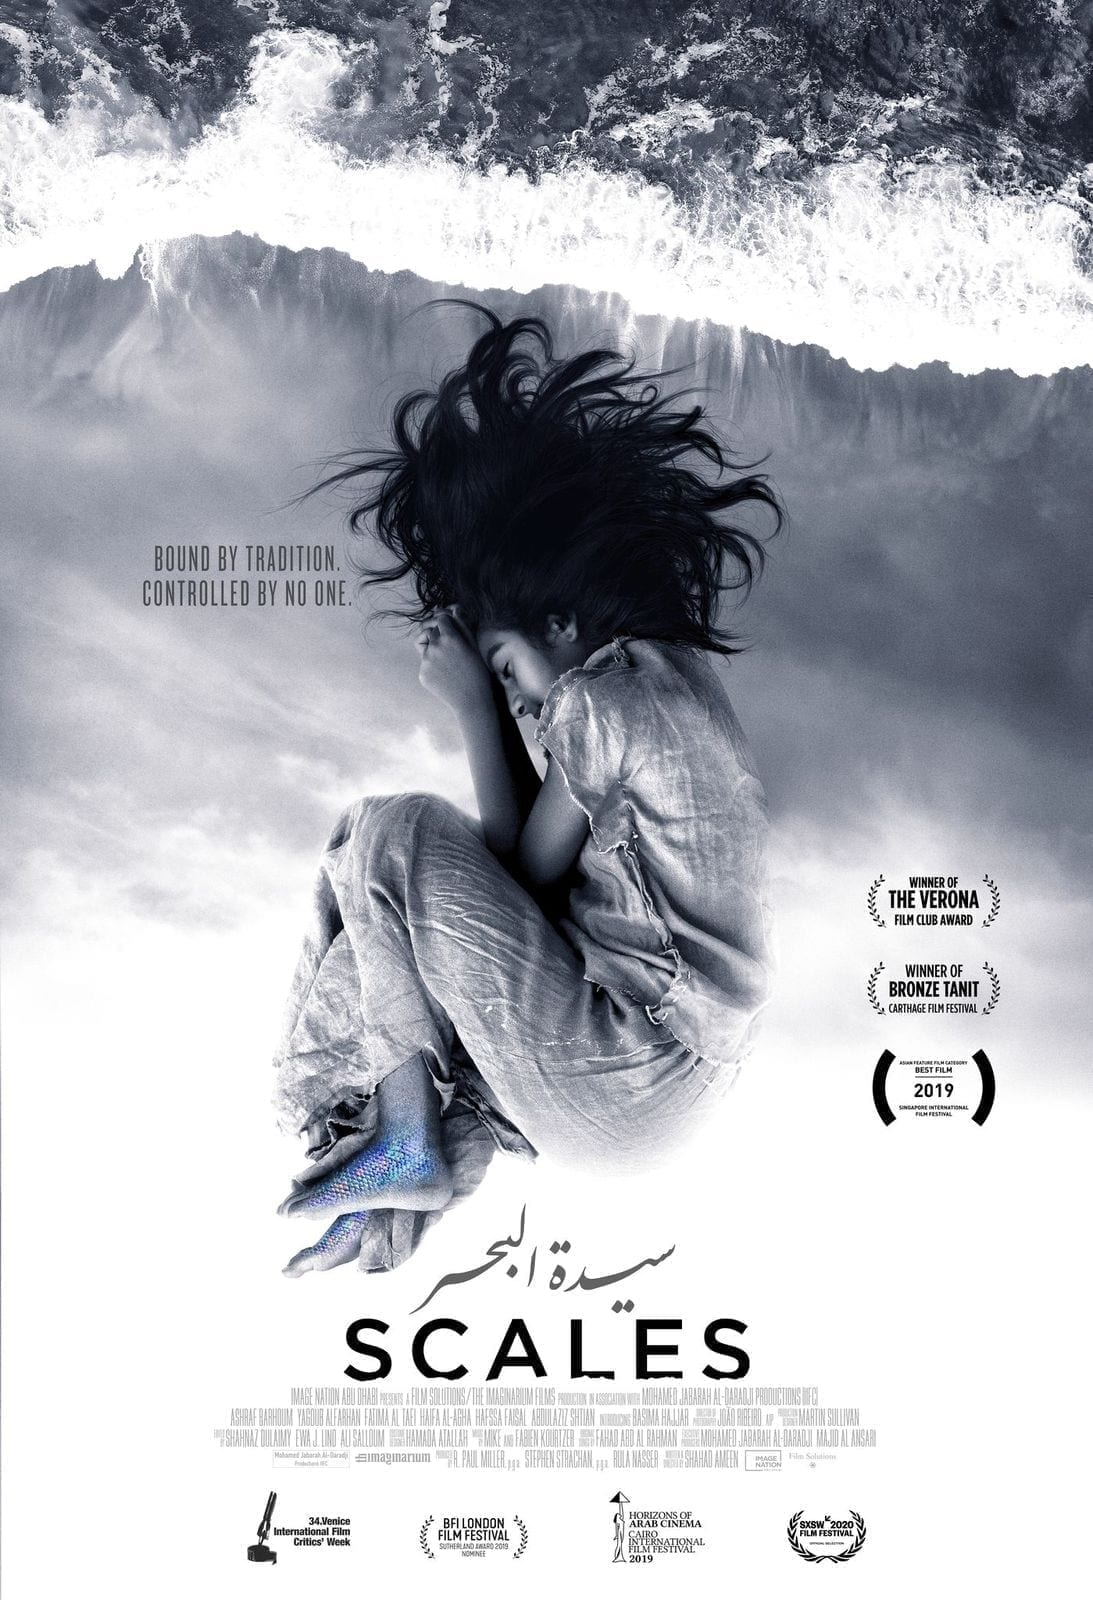 Writer and Director Shahad Ameen's movie, Scales, selected as Saudi Arabia's national submission for the 2021 Academy Awards